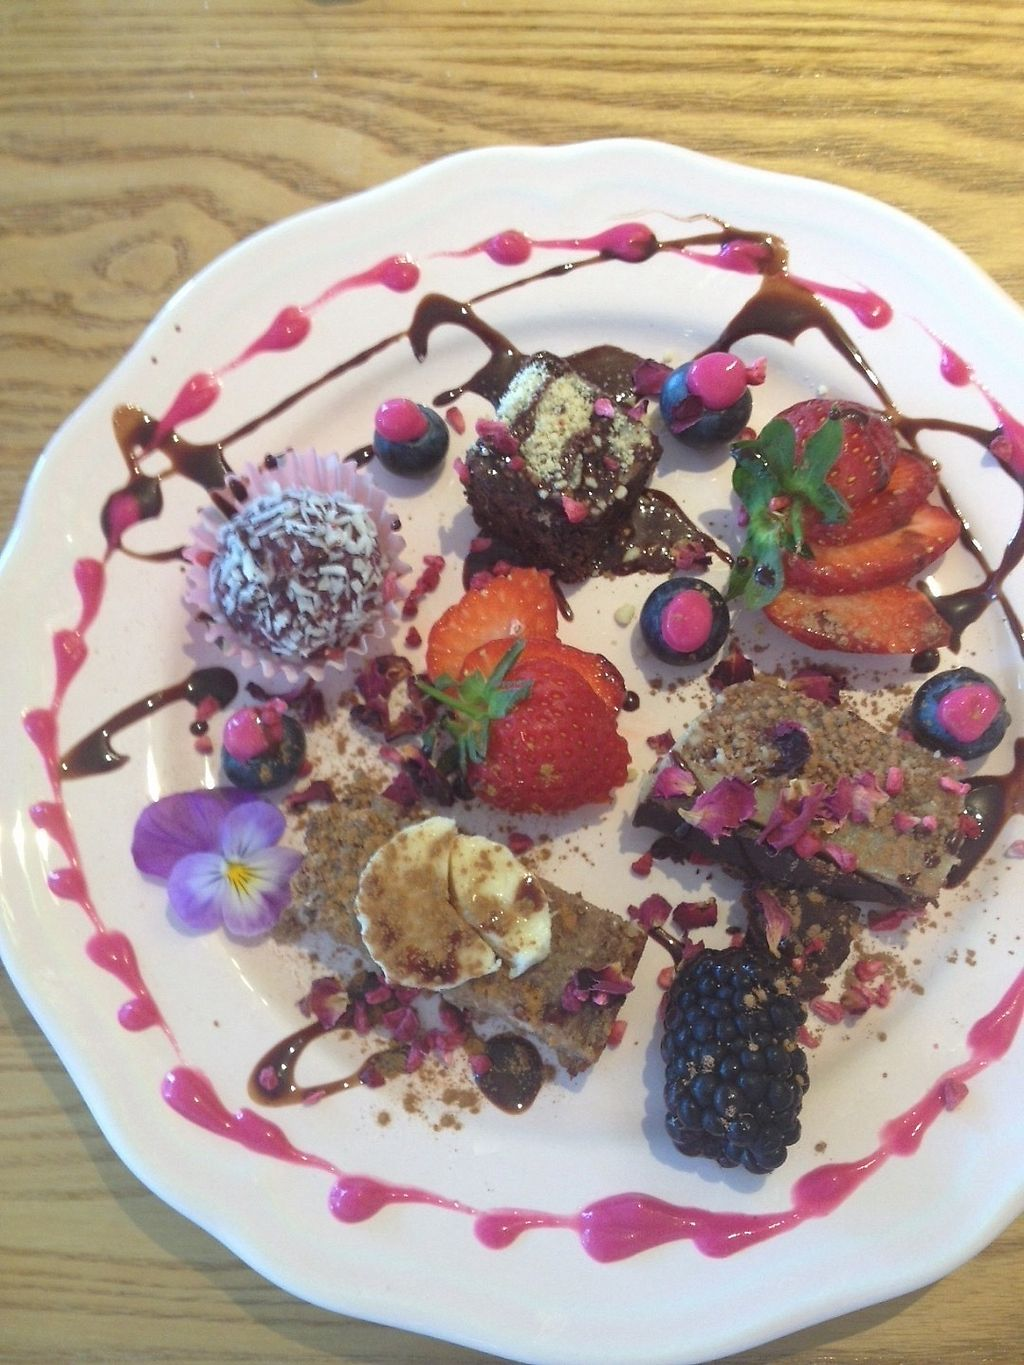 """Photo of Earthlings  by <a href=""""/members/profile/CoralS"""">CoralS</a> <br/>Dessert sampler <br/> June 17, 2017  - <a href='/contact/abuse/image/73798/270096'>Report</a>"""